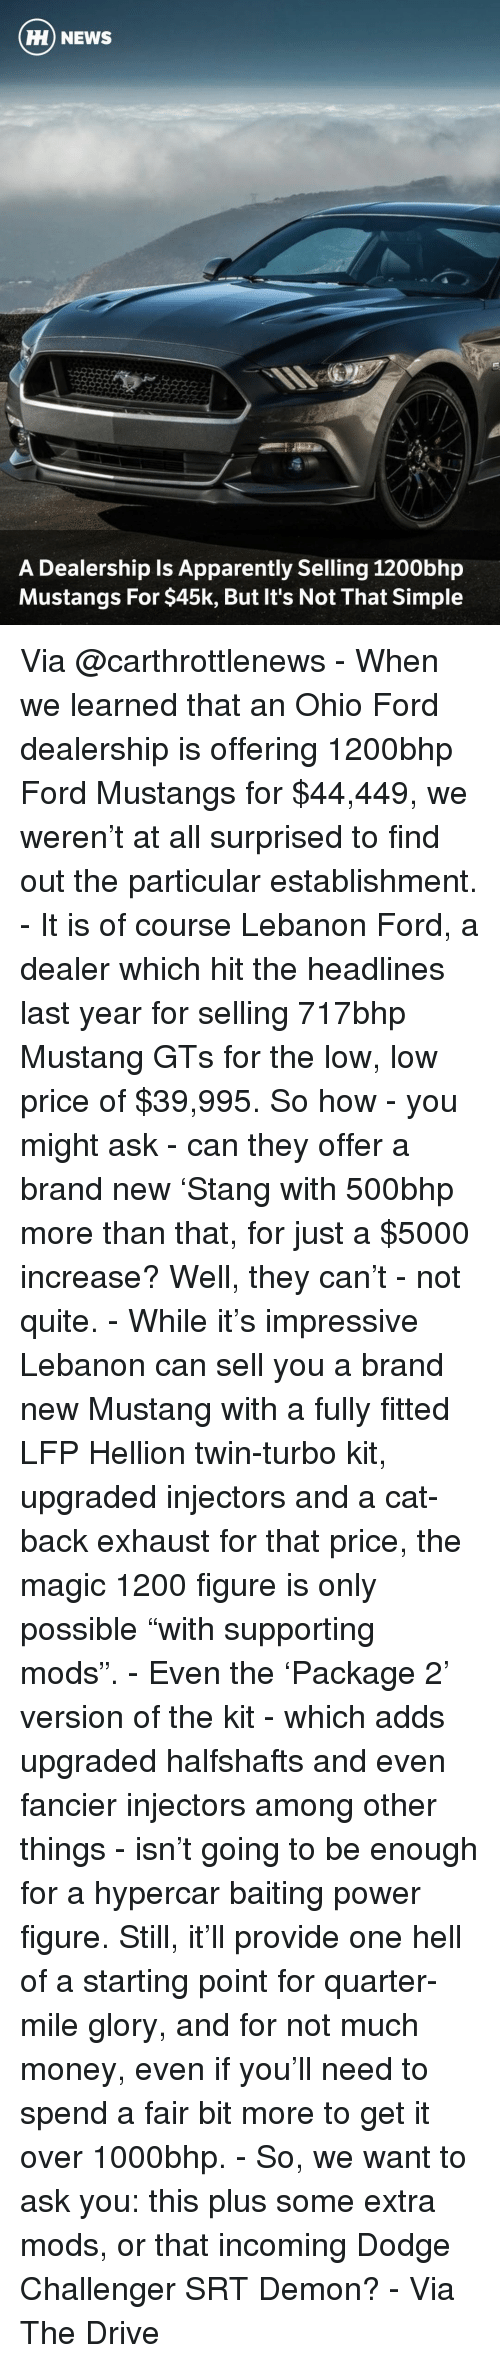 """Dodge Challenger: HH NEWS  A Dealership Is Apparently Selling 1200bhp  Mustangs For $45k, But It's Not That Simple Via @carthrottlenews - When we learned that an Ohio Ford dealership is offering 1200bhp Ford Mustangs for $44,449, we weren't at all surprised to find out the particular establishment. - It is of course Lebanon Ford, a dealer which hit the headlines last year for selling 717bhp Mustang GTs for the low, low price of $39,995. So how - you might ask - can they offer a brand new 'Stang with 500bhp more than that, for just a $5000 increase? Well, they can't - not quite. - While it's impressive Lebanon can sell you a brand new Mustang with a fully fitted LFP Hellion twin-turbo kit, upgraded injectors and a cat-back exhaust for that price, the magic 1200 figure is only possible """"with supporting mods"""". - Even the 'Package 2' version of the kit - which adds upgraded halfshafts and even fancier injectors among other things - isn't going to be enough for a hypercar baiting power figure. Still, it'll provide one hell of a starting point for quarter-mile glory, and for not much money, even if you'll need to spend a fair bit more to get it over 1000bhp. - So, we want to ask you: this plus some extra mods, or that incoming Dodge Challenger SRT Demon? - Via The Drive"""